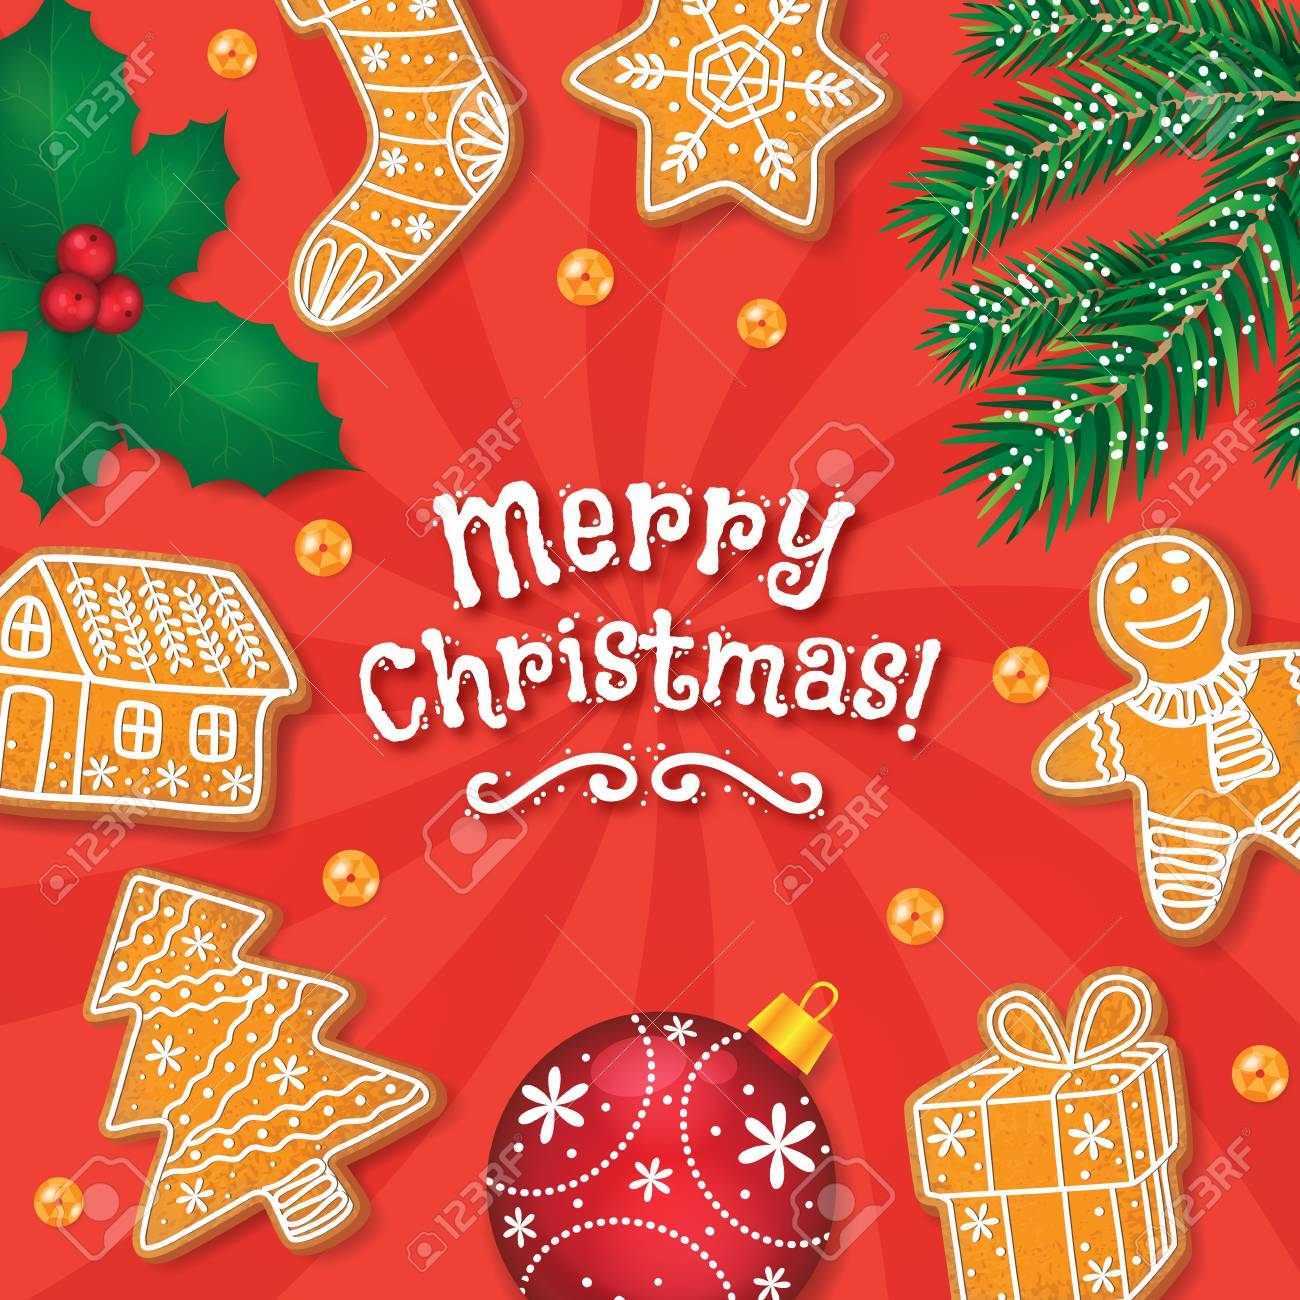 Merry Christmas Greeting Card Postcard Banner Design With Glazed